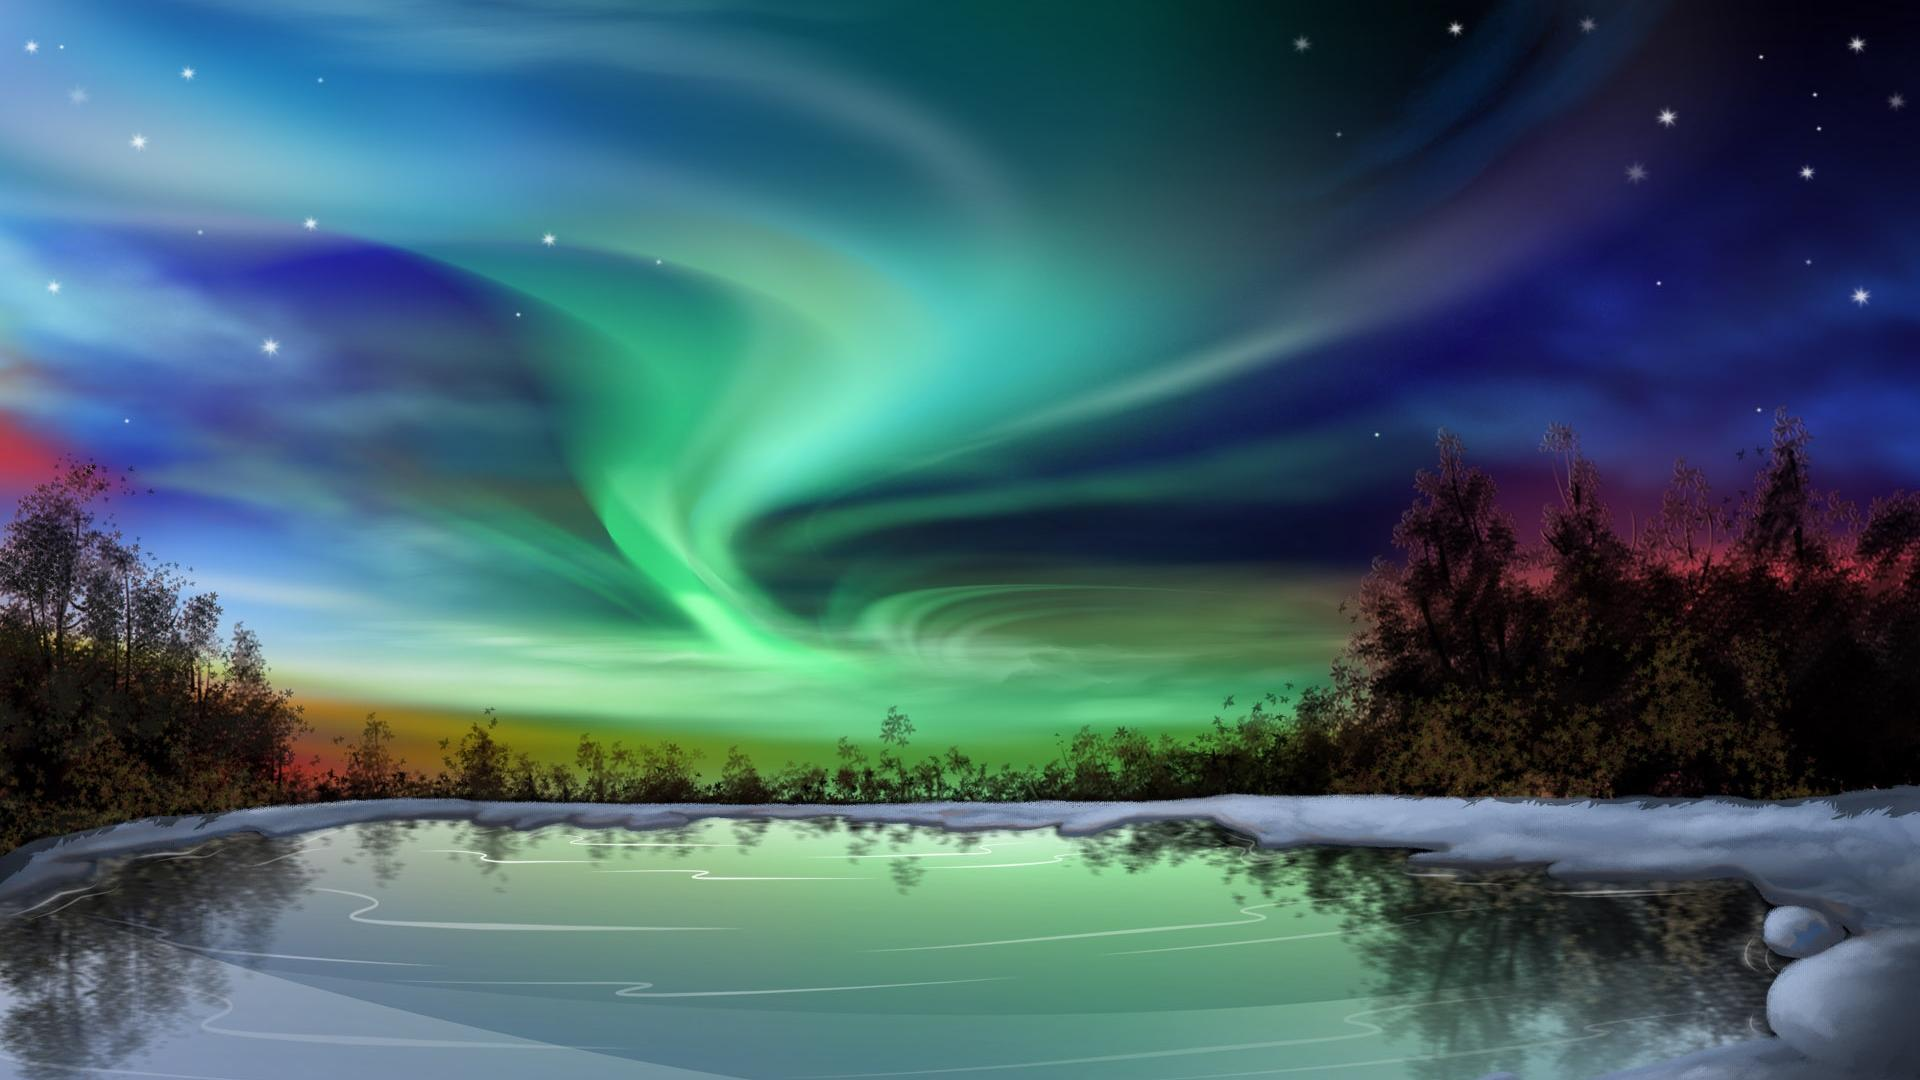 41+] HD Northern Lights Wallpaper on